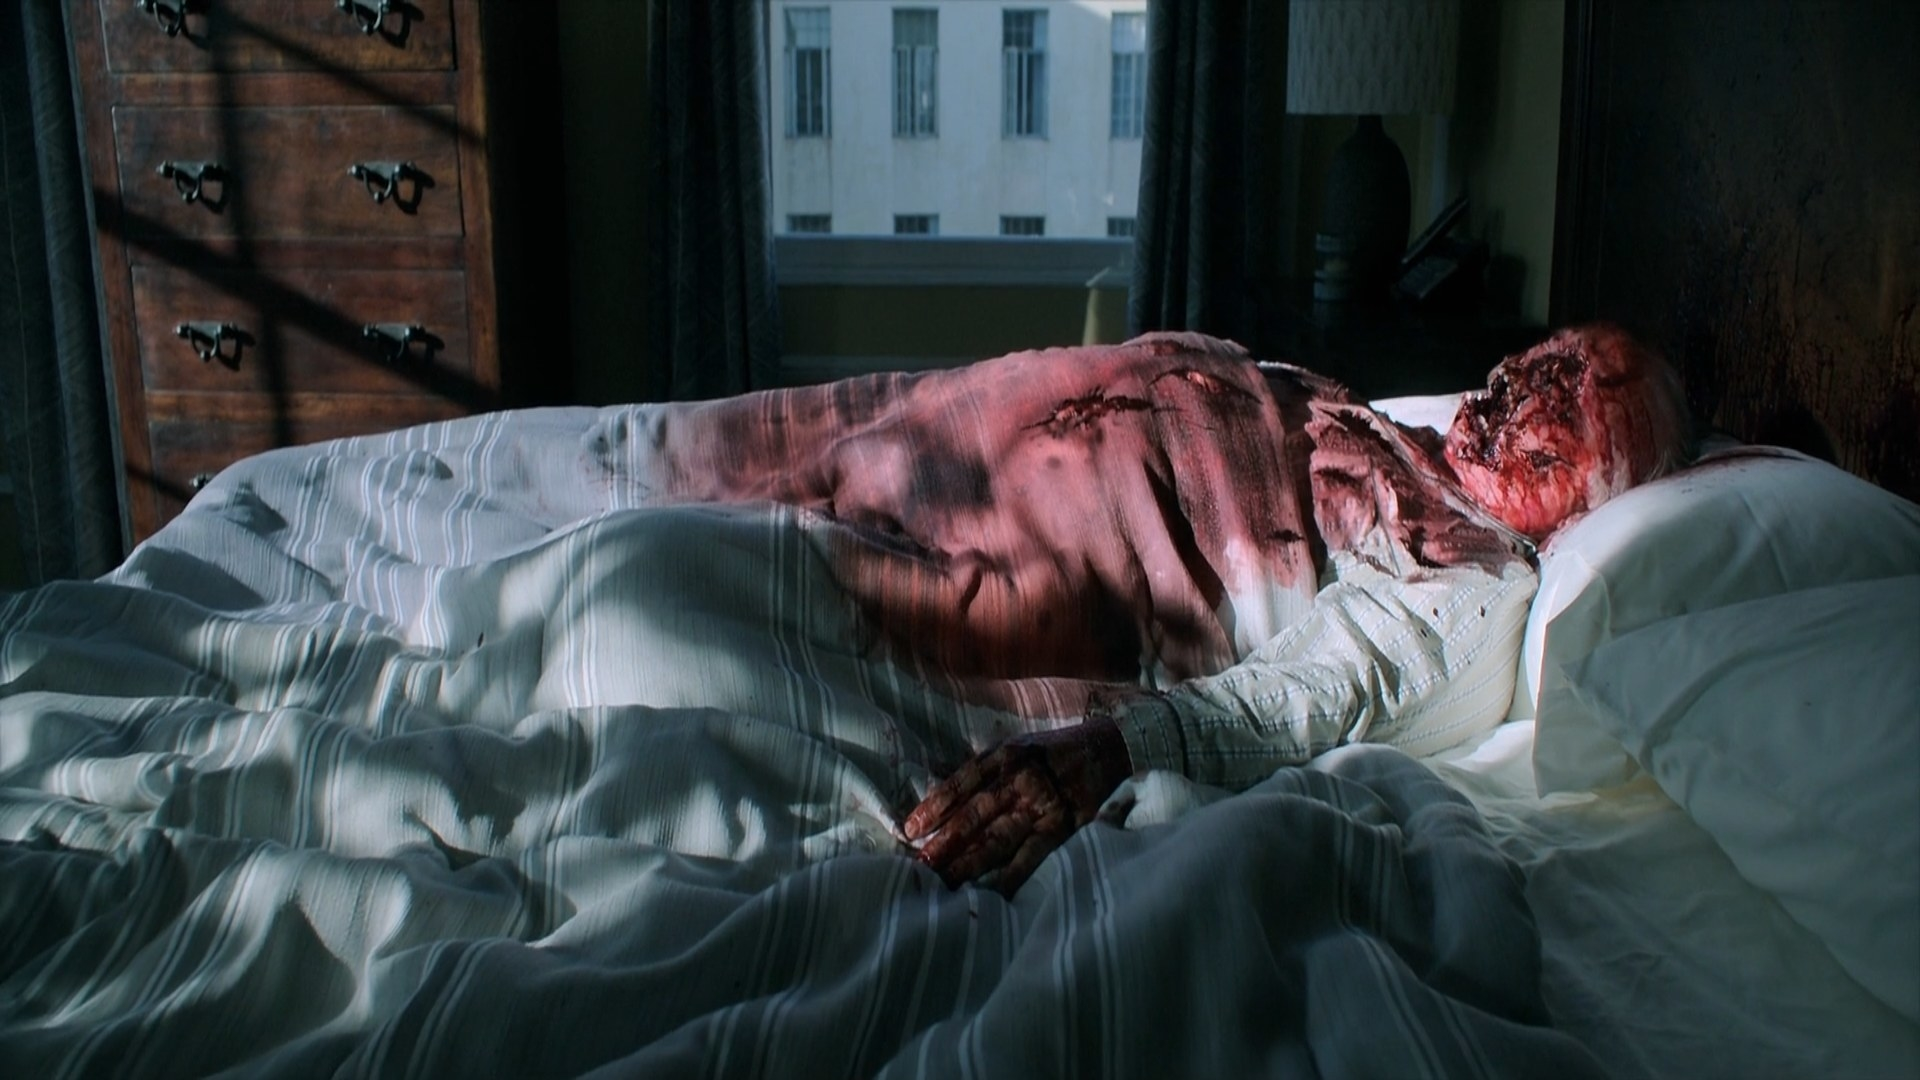 A dead man with his face stabbed lying on bed.